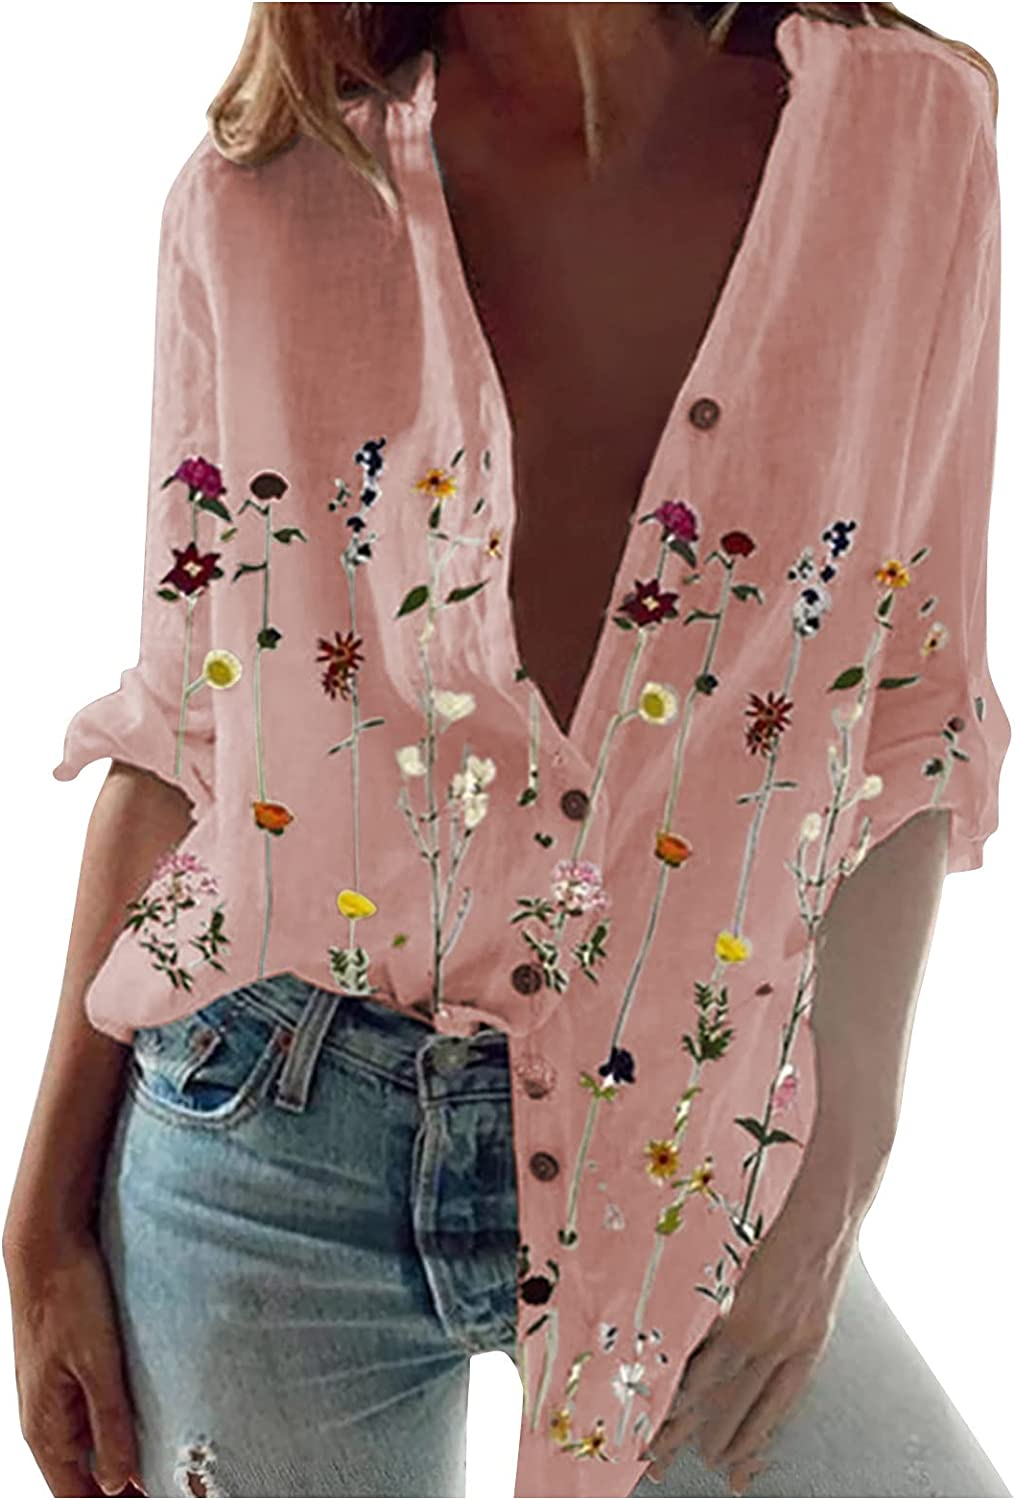 LEXUPA Tank Tops Loose Fit Causal Fashion Women's Loose Floral Printed Blouse V-Neck Buttons Casual Shirt Tops